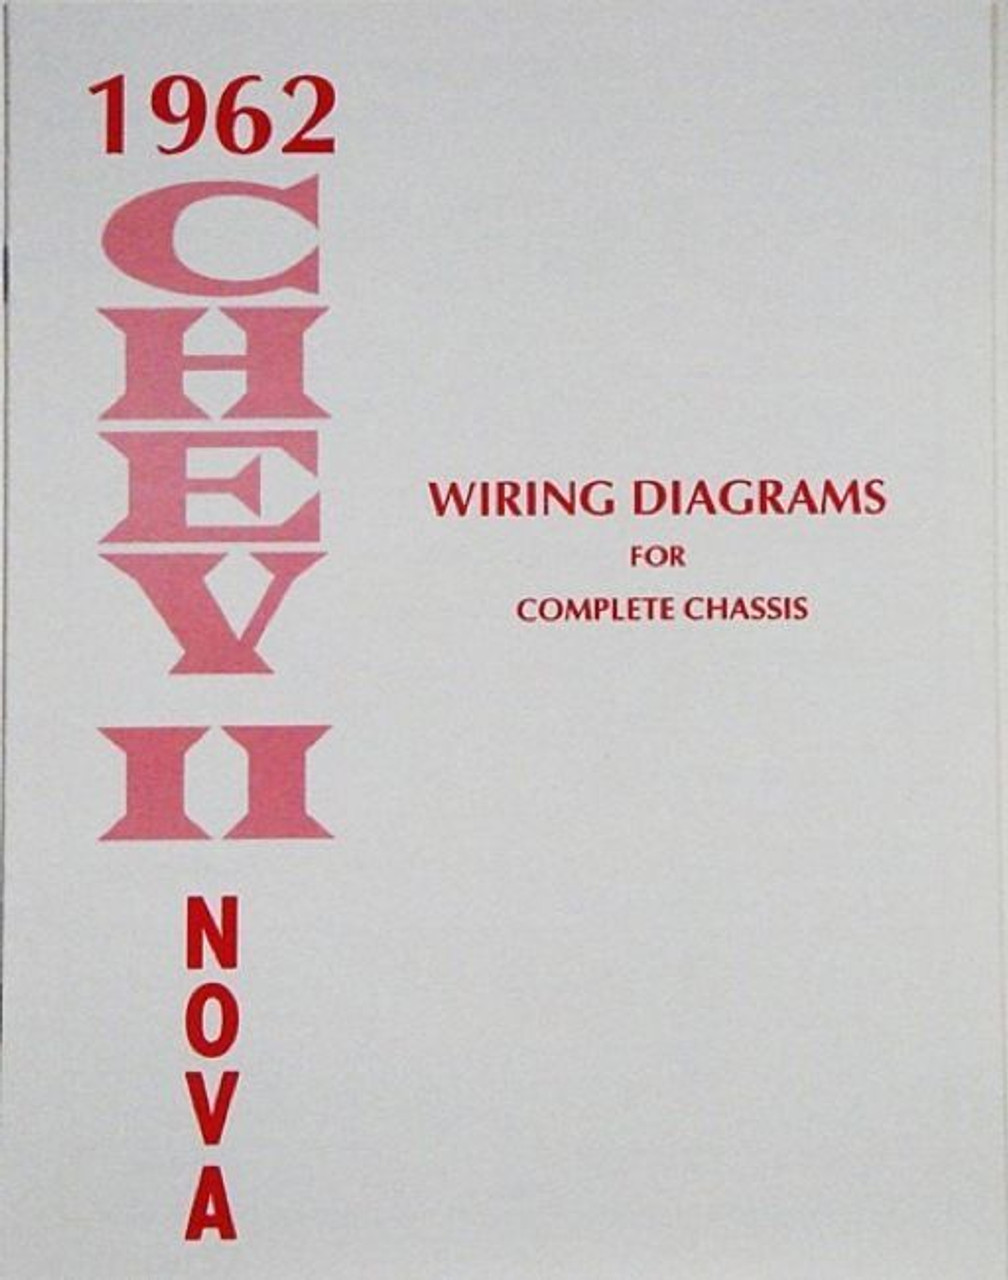 62 1962 chevy nova electrical wiring diagram manual i 5 classic chevy rh i5chevy com 1962 nova turn signal wiring diagram 71 Nova Wiring Diagram